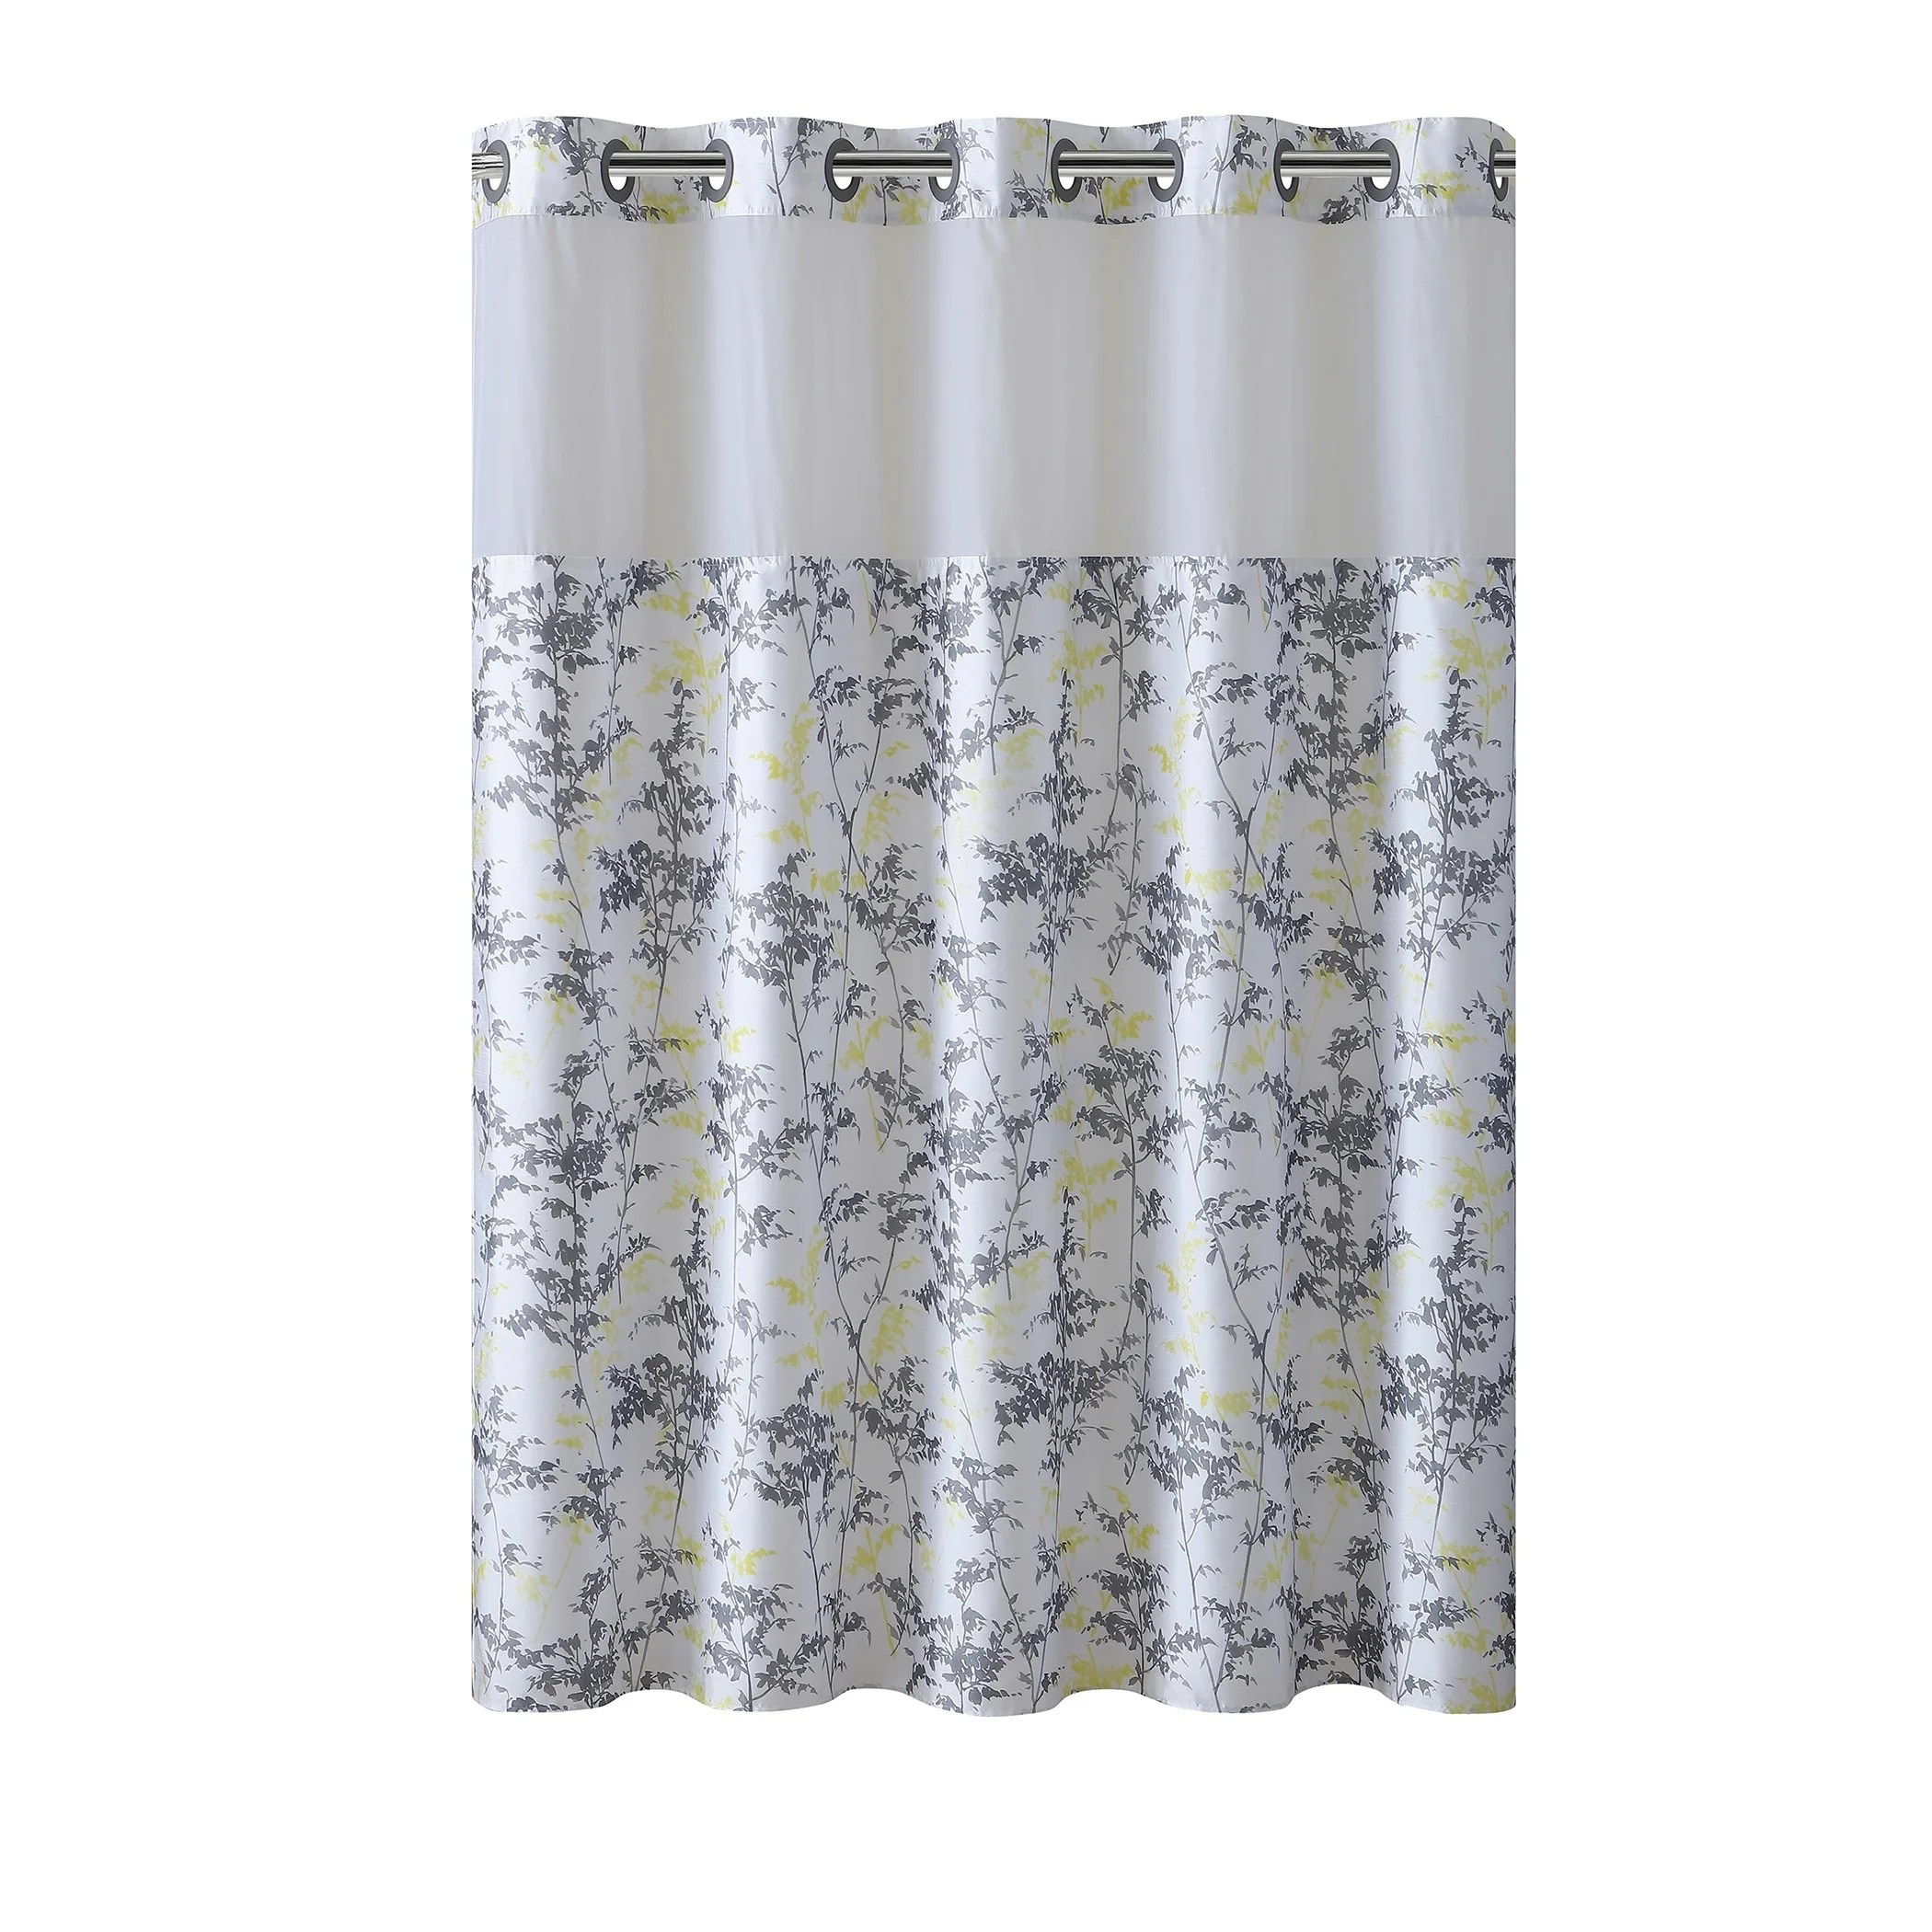 hookless shower curtain floral leaves gray yellow